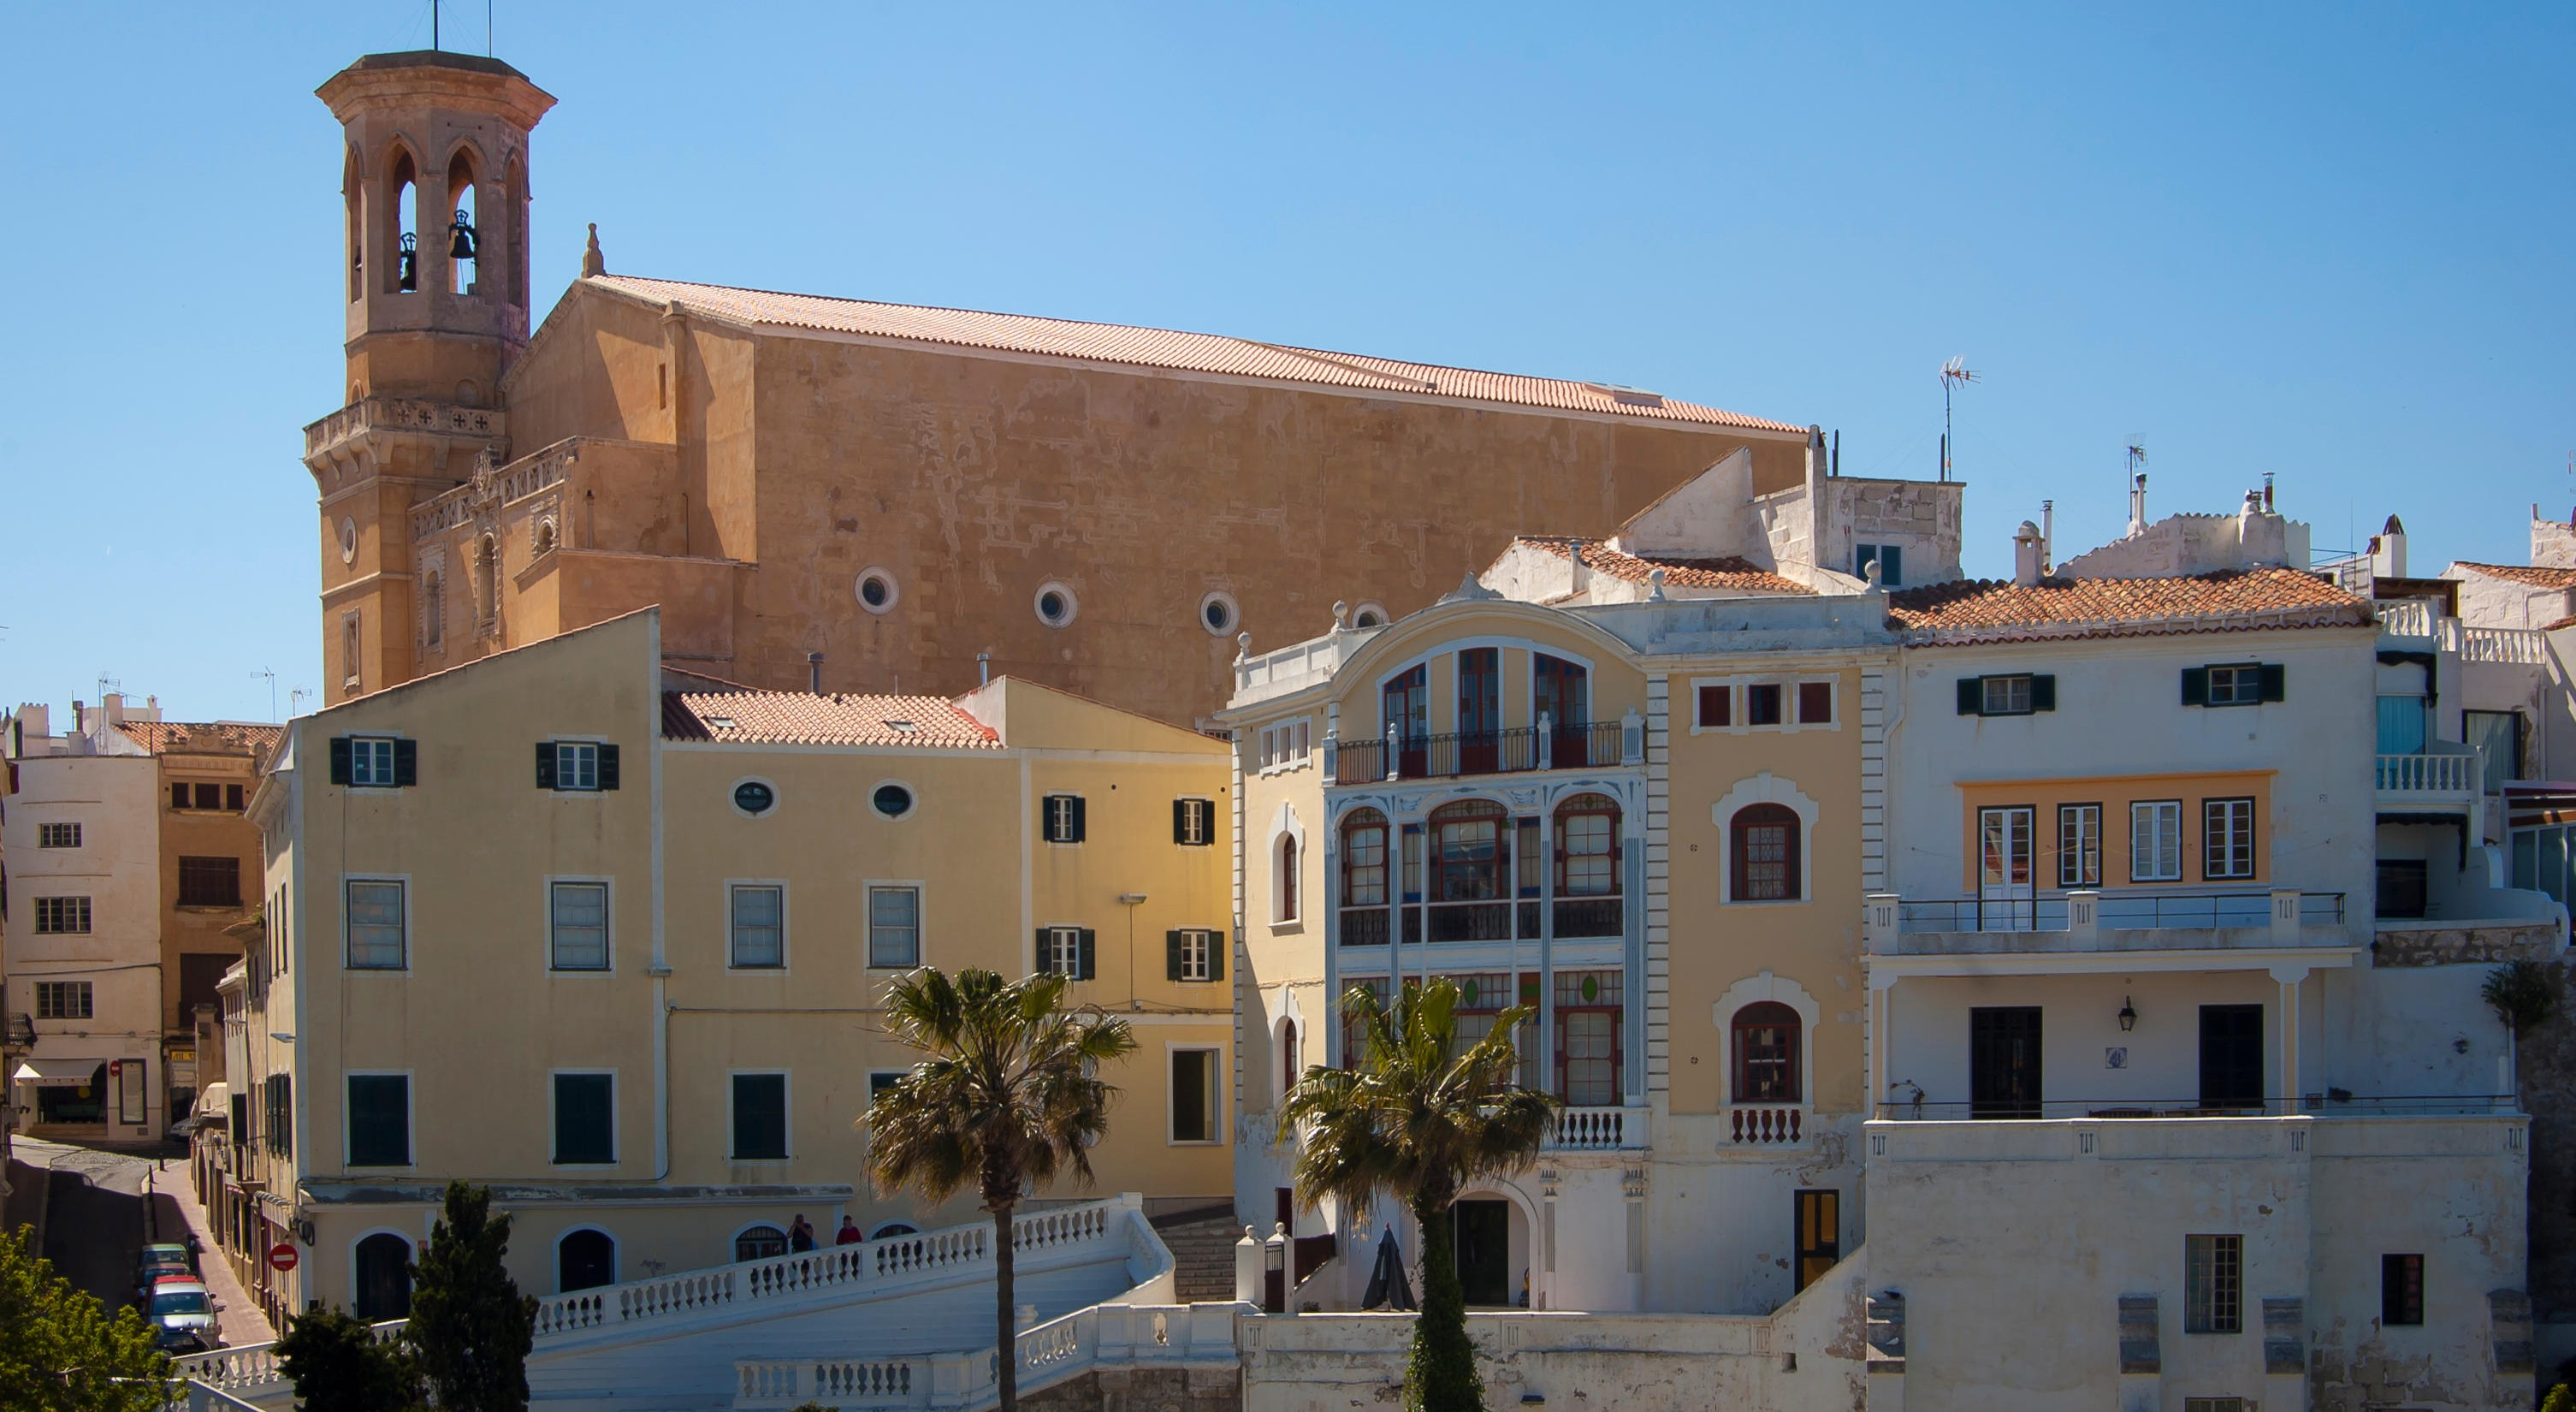 Mahón is the capital city of Menorca